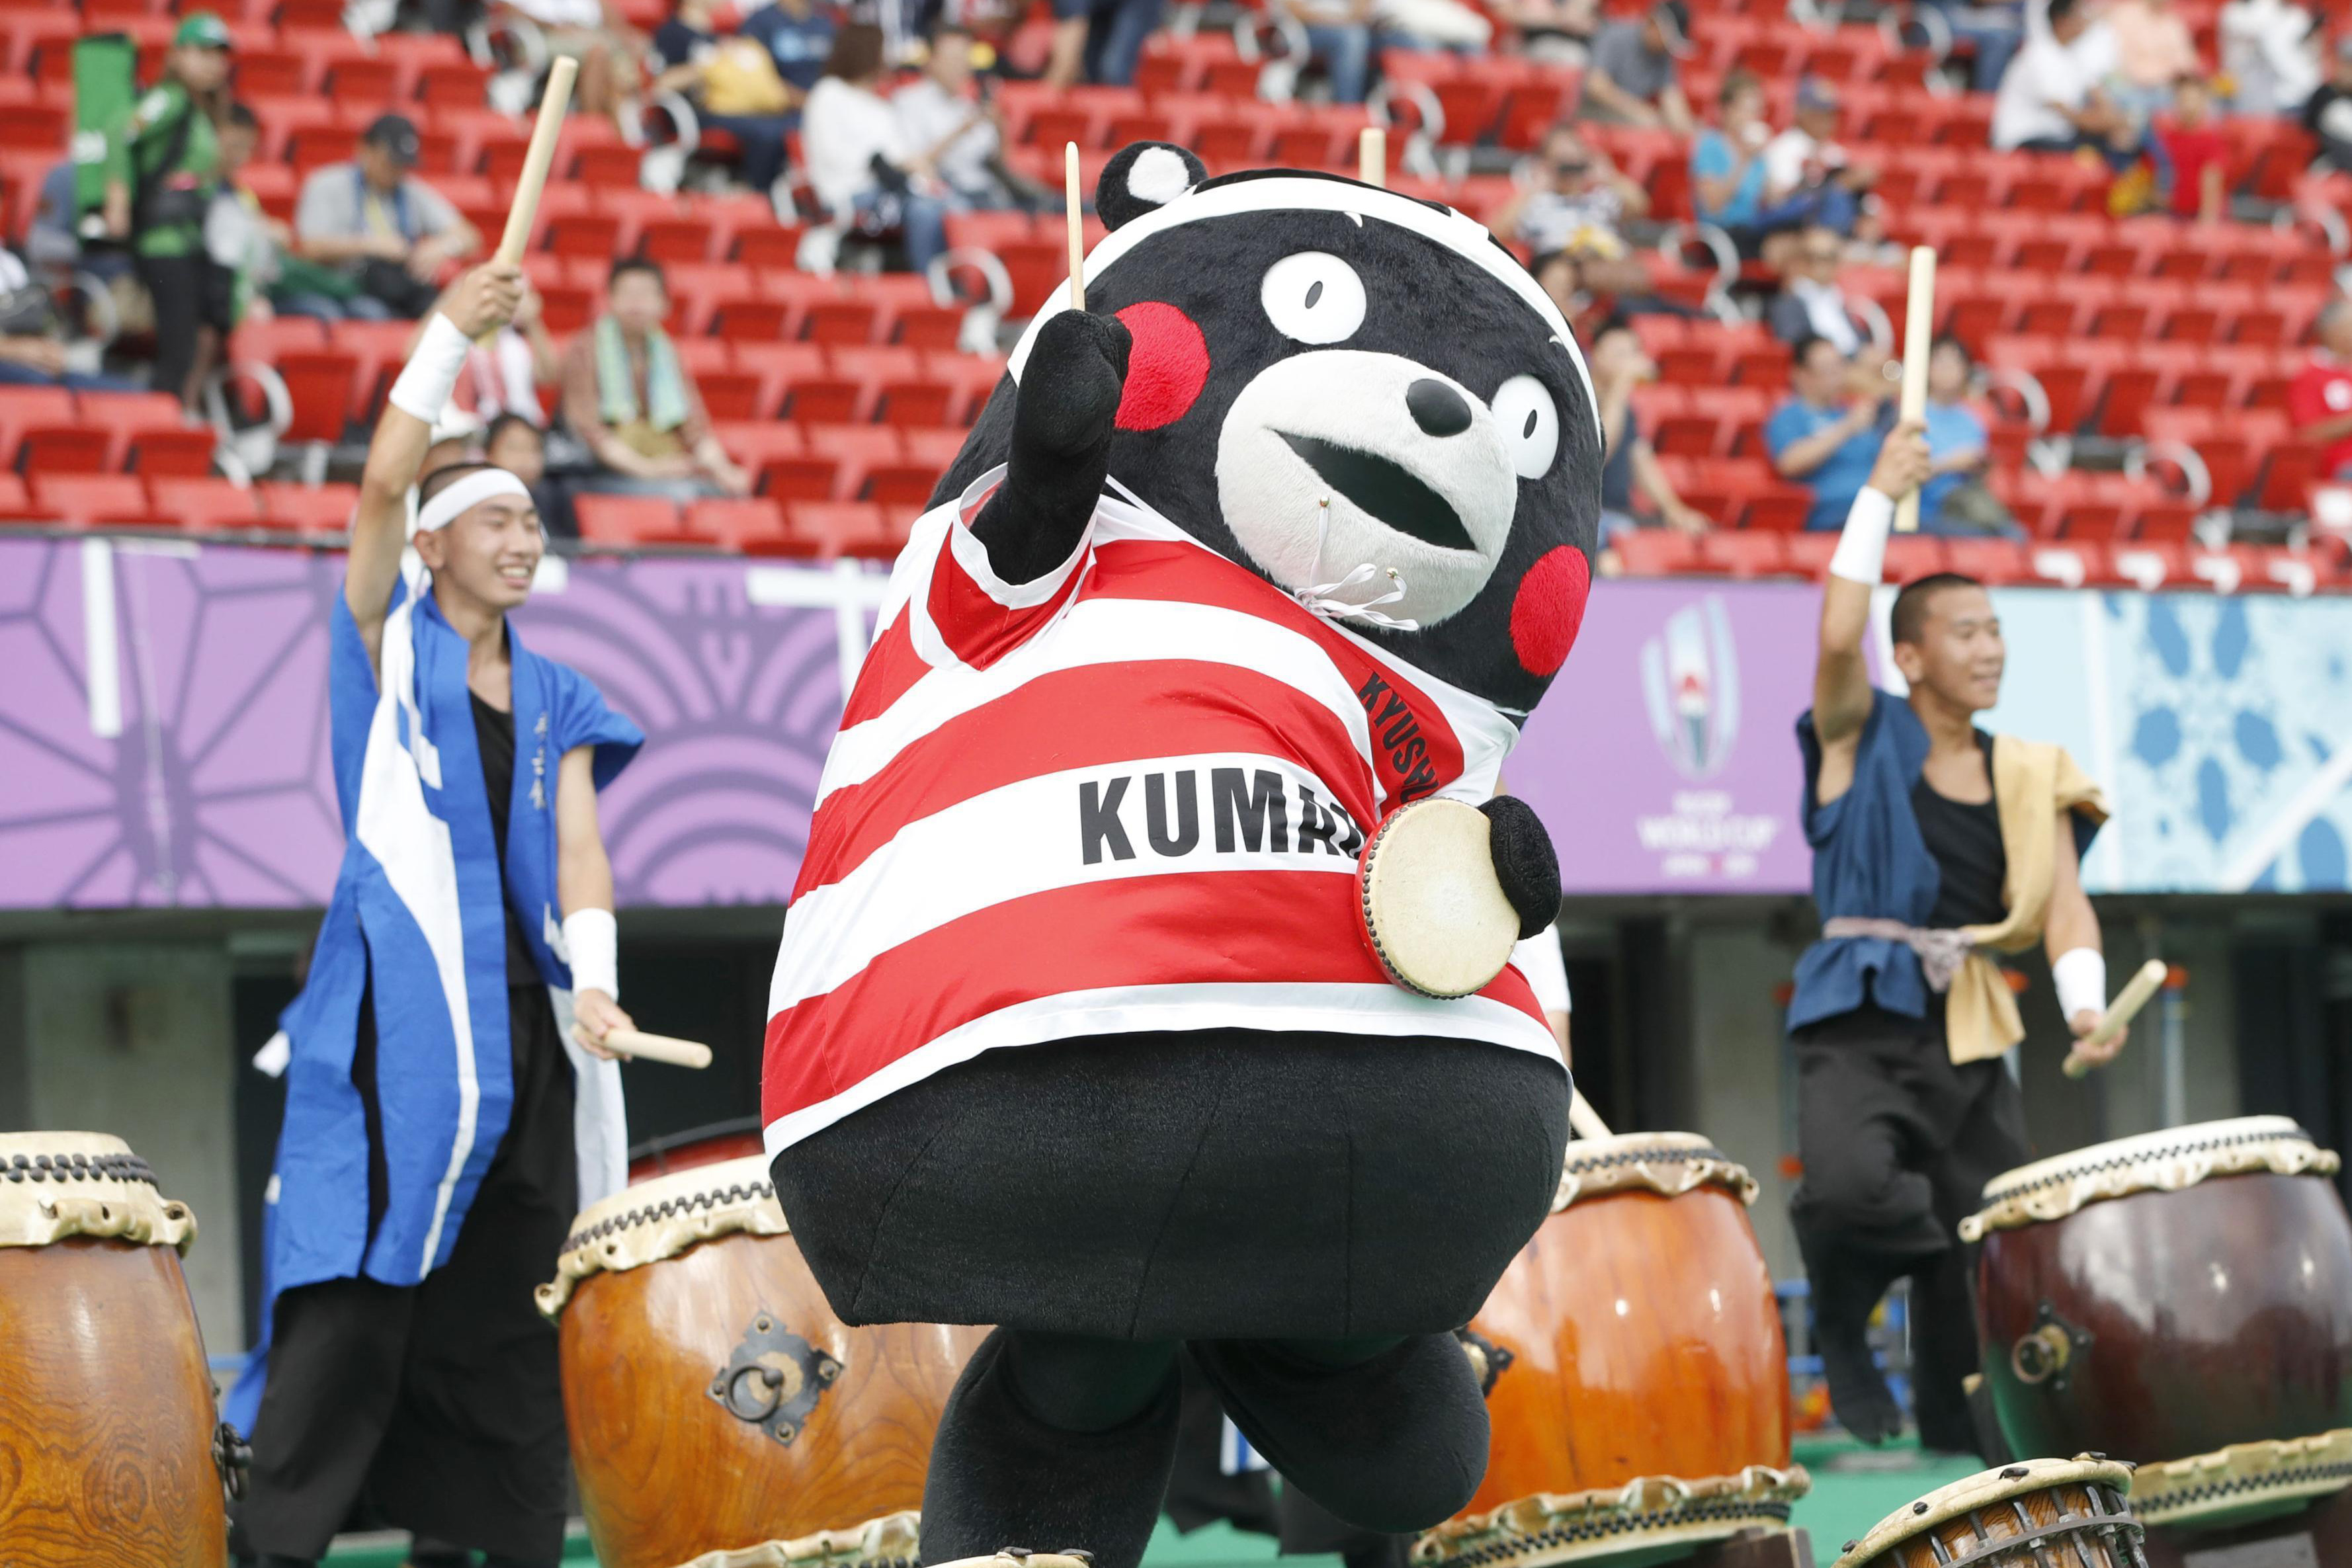 Kumamoto, Japan. 6th Oct, 2019. Kumamon, official mascot of the southwestern Japan prefecture of Kumamoto, performs ahead of a Rugby World Cup Pool C match between France and Tonga on Oct. 6, 2019, in the prefecture's Kumamoto city. (Kyodo)==Kyodo Photo v